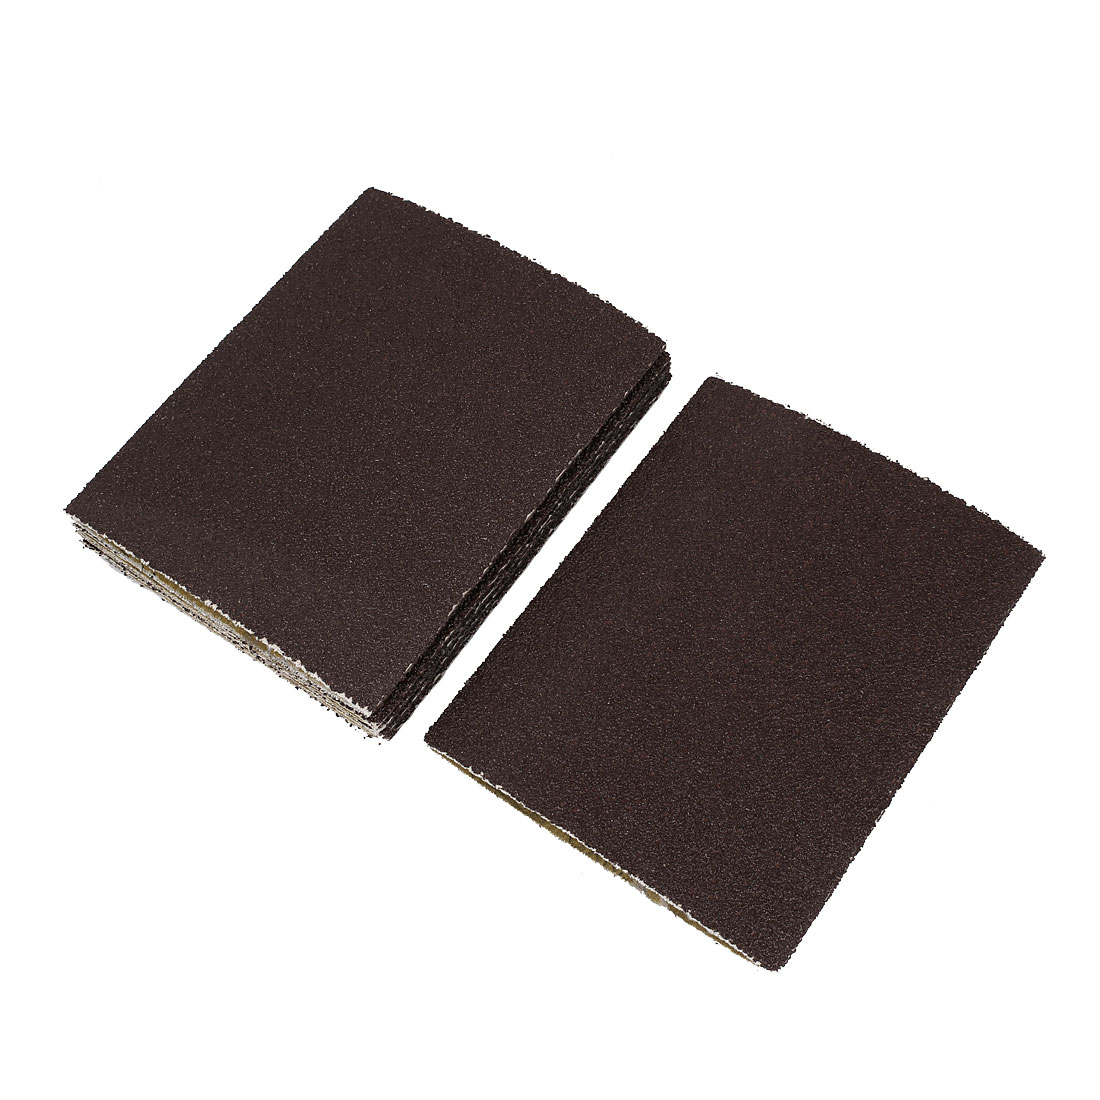 Woodworking 340mmx210mm 36 Grit Abrasive Sanding Belt Sandpaper 6pcs